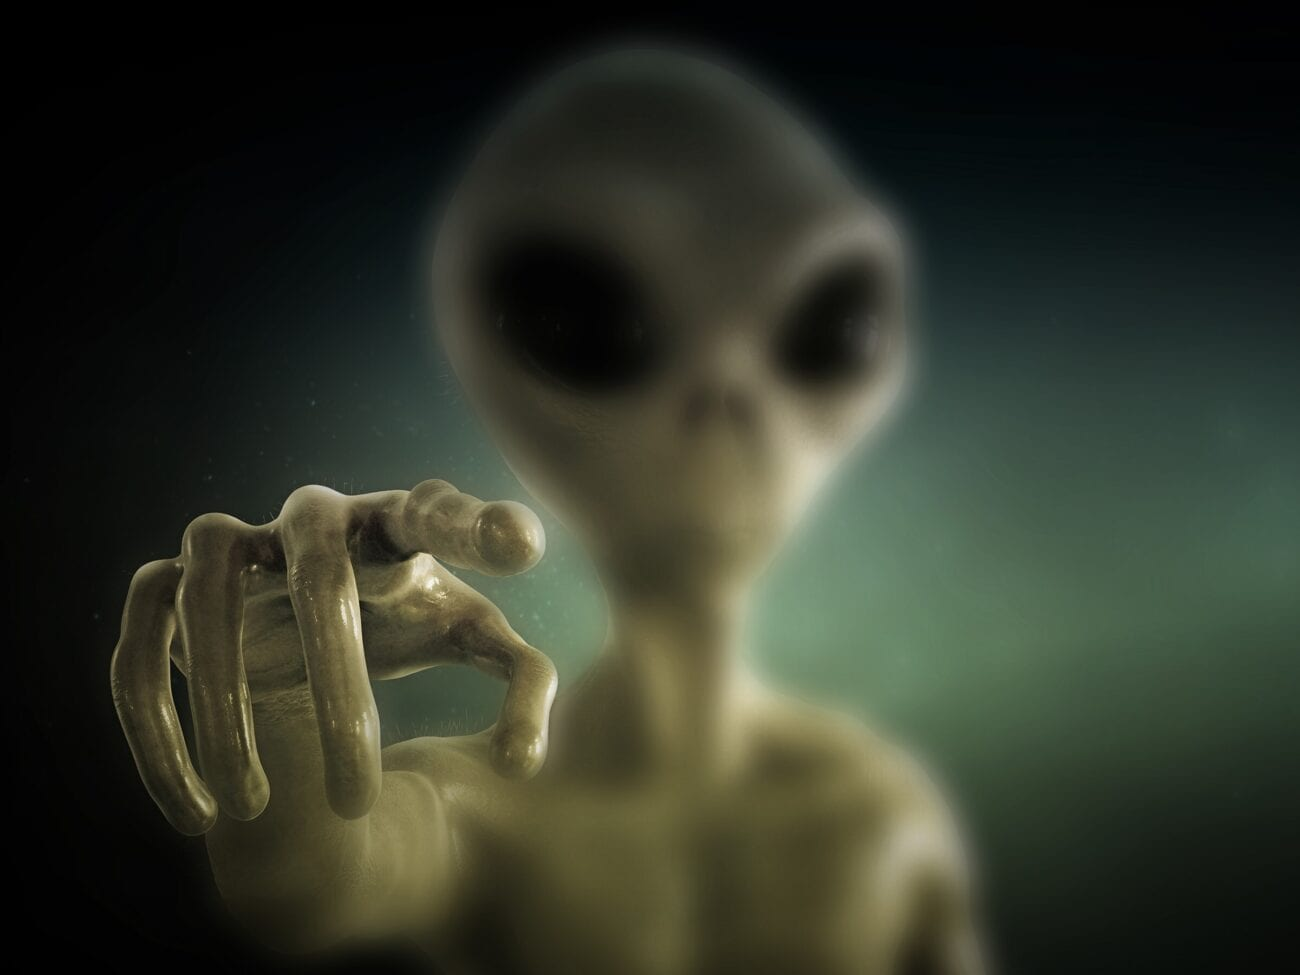 Here's a theory: maybe abduction reports stopped because whatever is going on this year is too weird. Have space aliens stopped visiting?